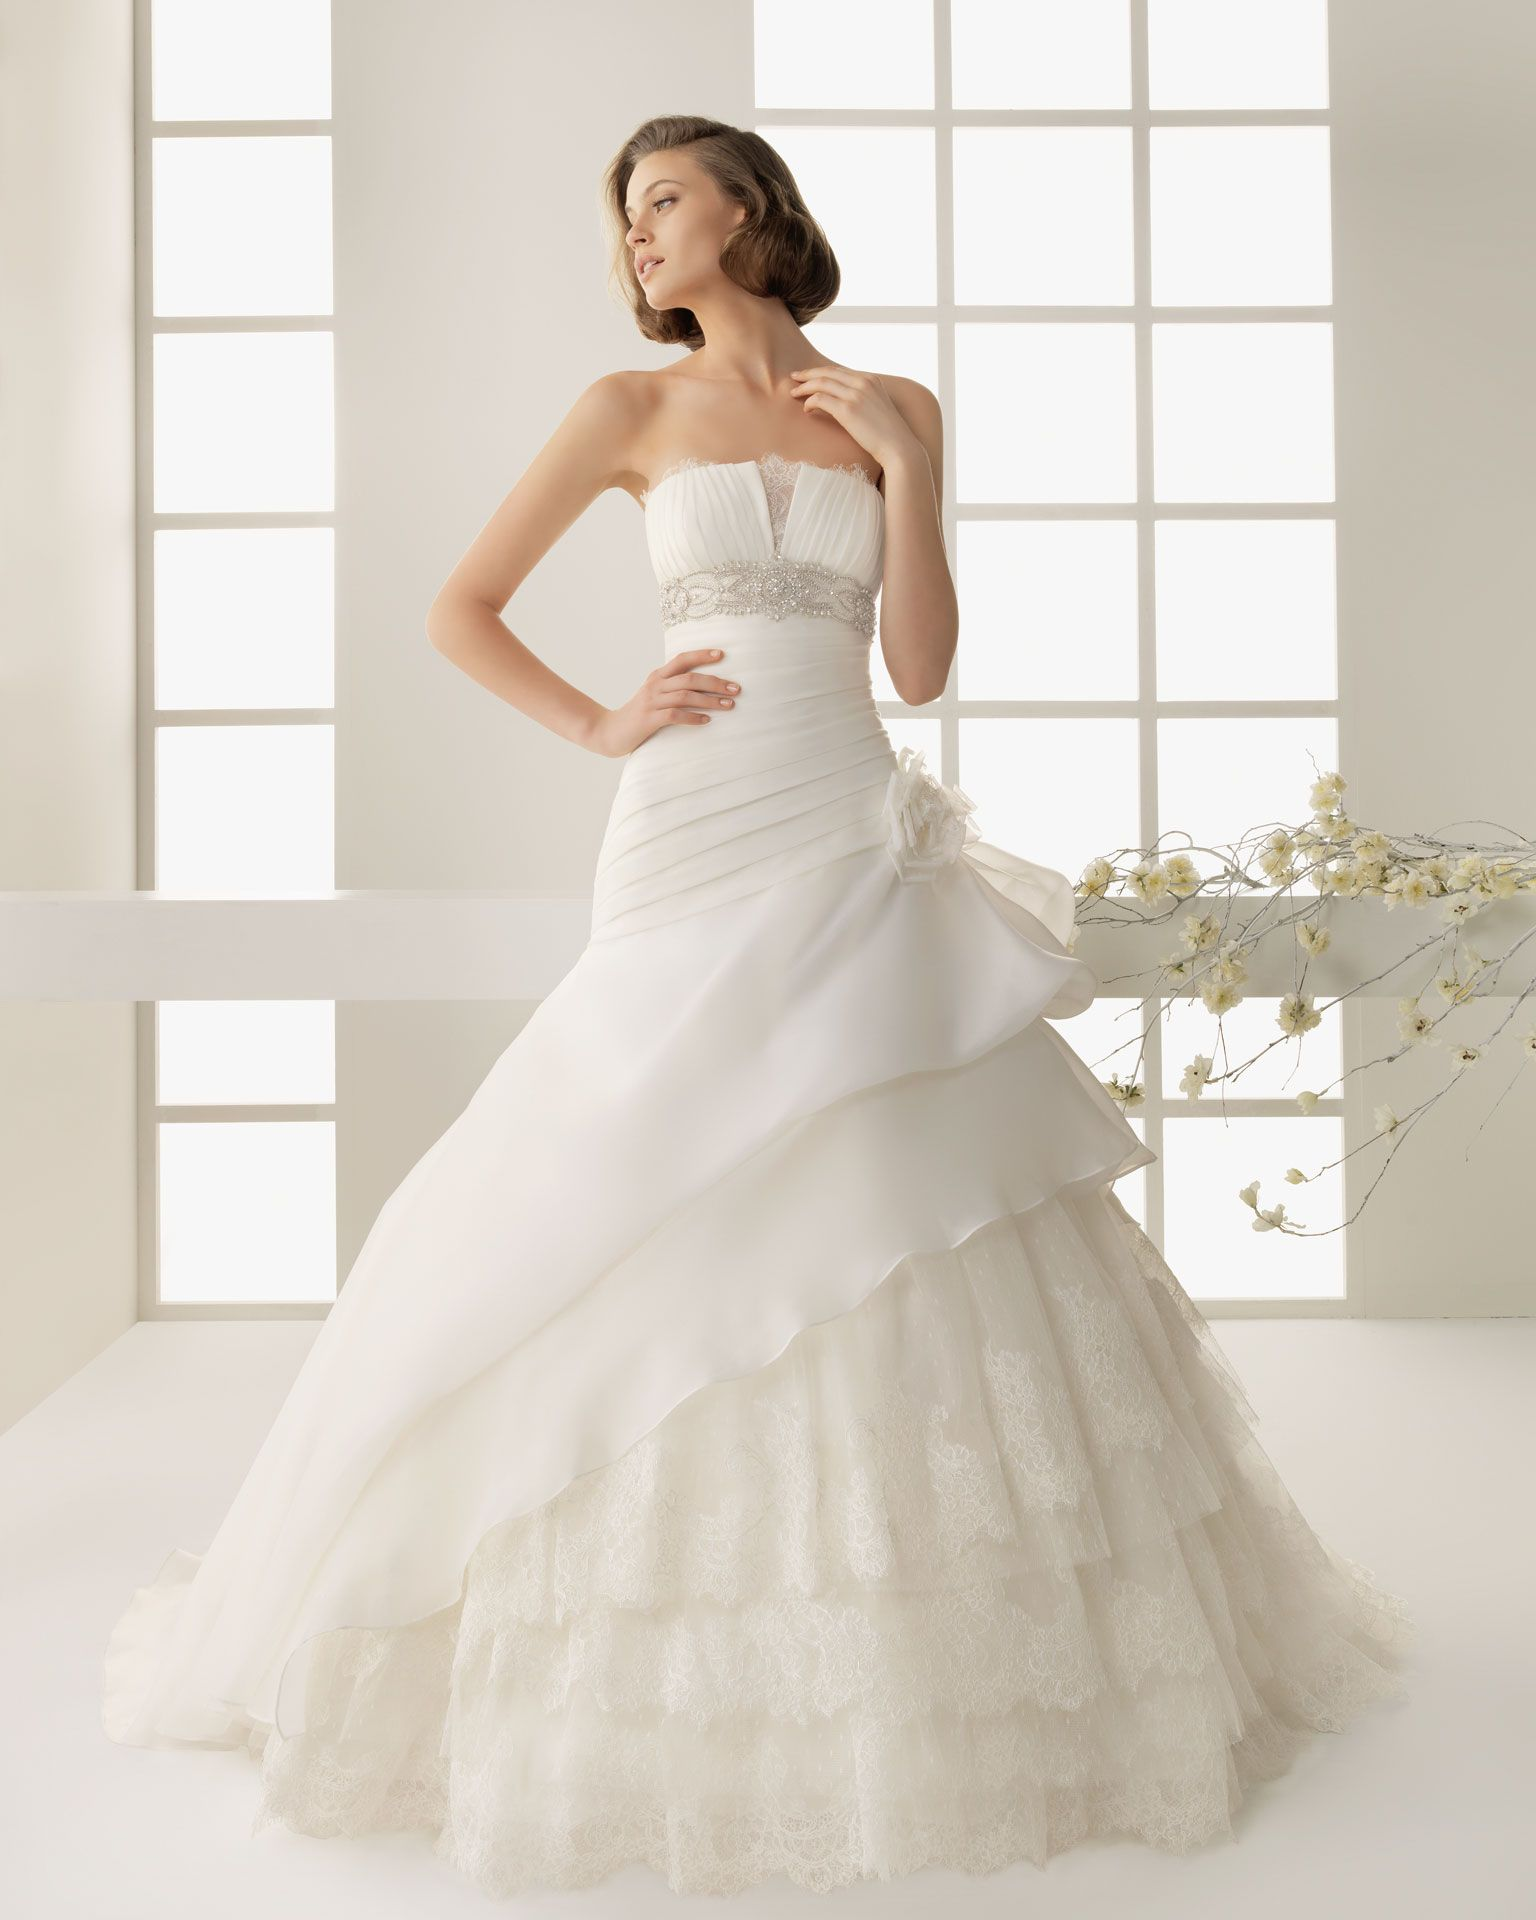 Ecru wedding dress  DINAMARCA  Embroidered organza beadwork gown in ecru X Beadwork